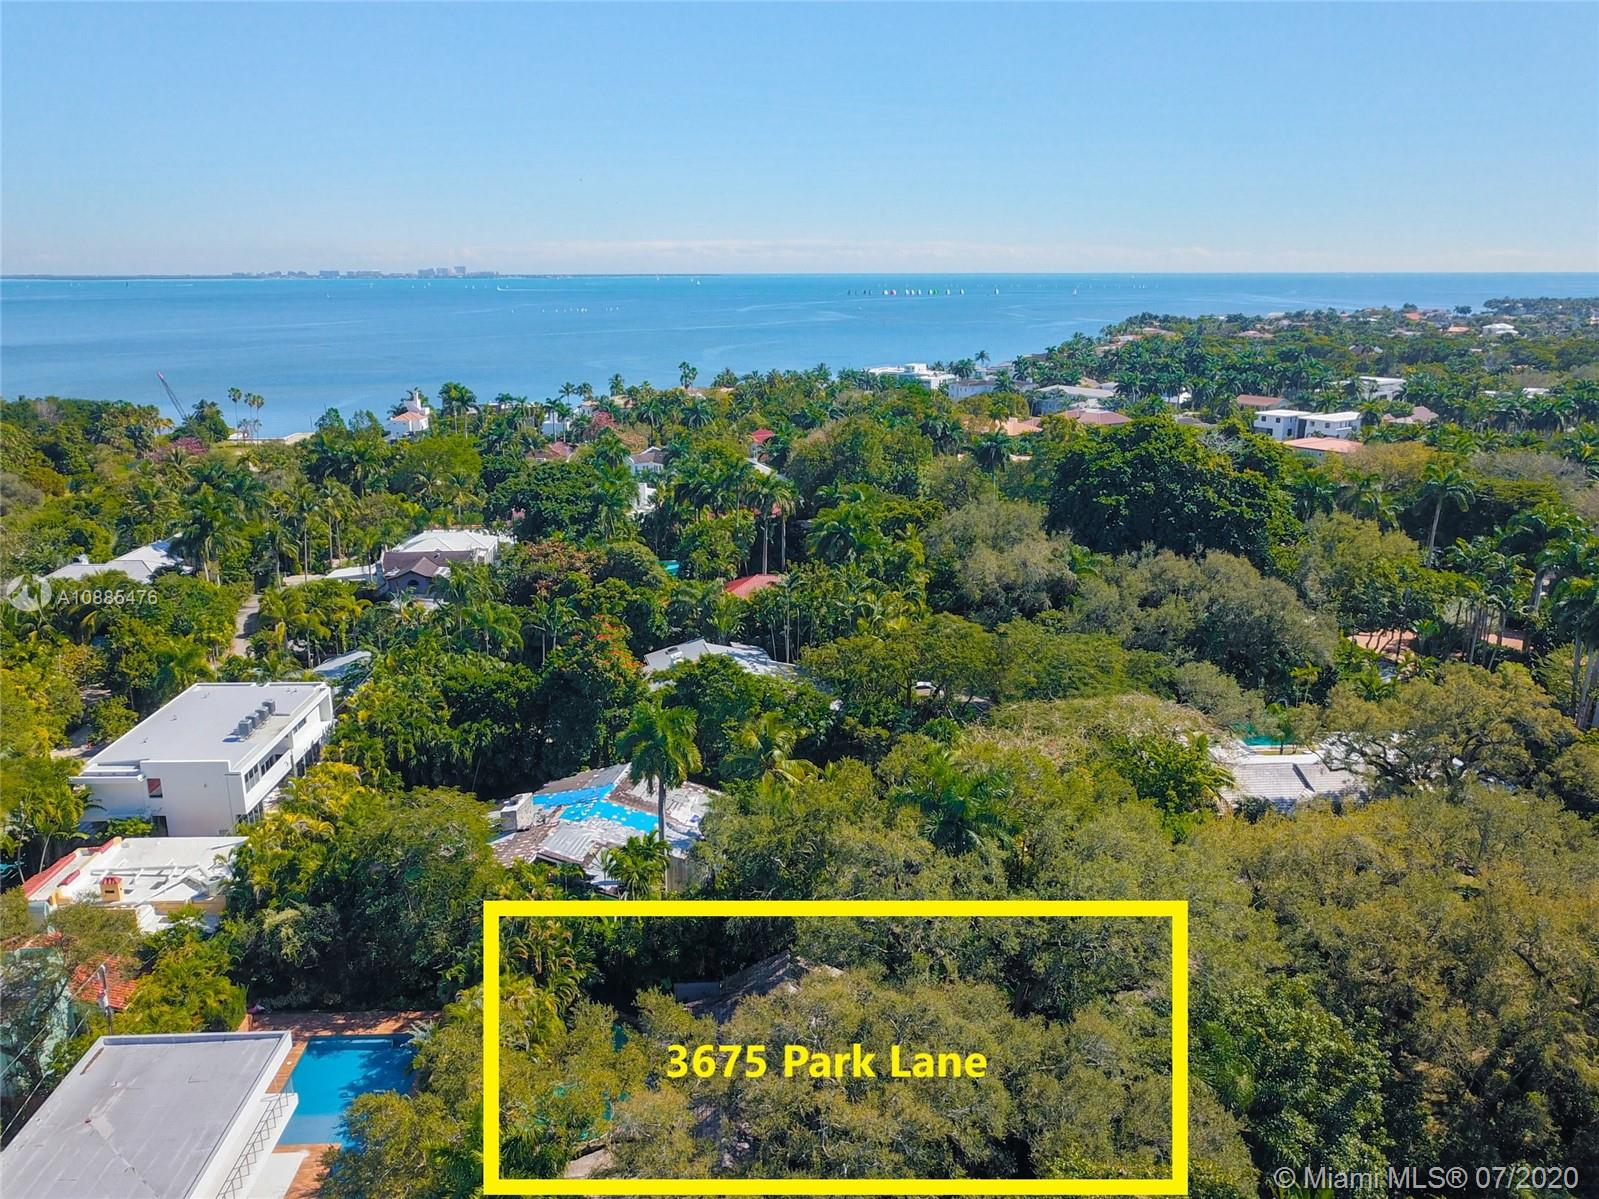 Incredible opportunity to purchase an oversized lot in South Coconut Grove on private street. Over 20,785 SF lot located on the high ridge above the flood zone but yet close to Biscayne Bay with riparian rights access via a seawall. Beautiful majestic oak trees and many trees to create complete privacy. Classical 1921 home that has been updated and expanded over the years featuring a large family room and formal dining. Move in as-is, renovate or build a new home. Plenty of room to build without impacting any trees. Walking distance to center Grove, schools, parks, churches and temple.